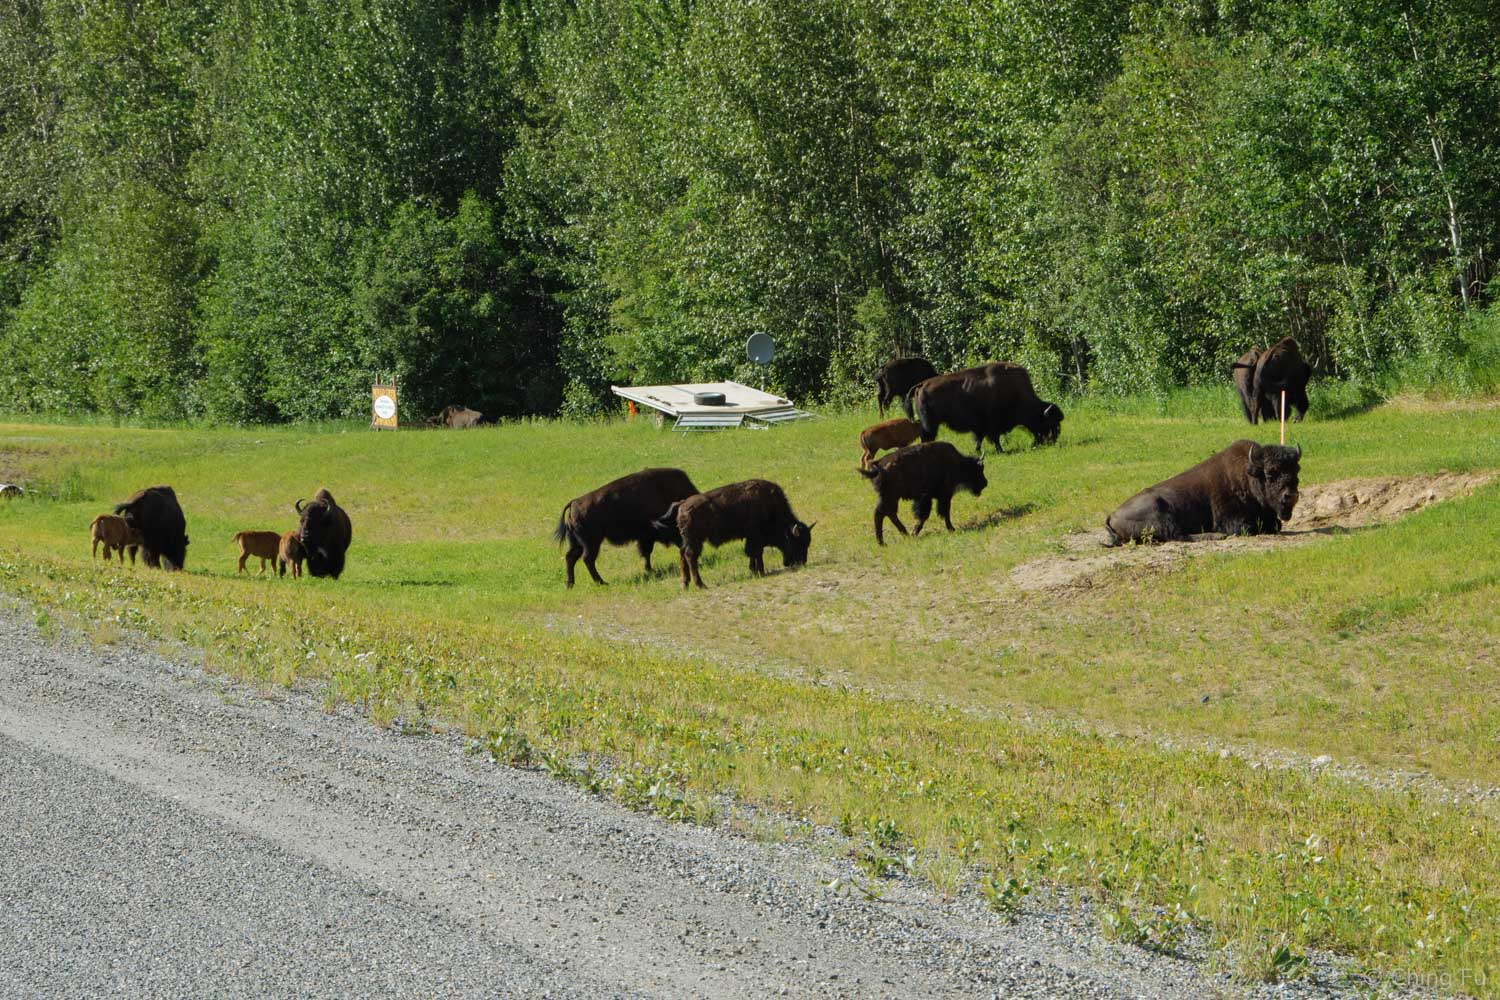 There are tons of bison along the Alaska Highway just outside Liard Hot Springs.